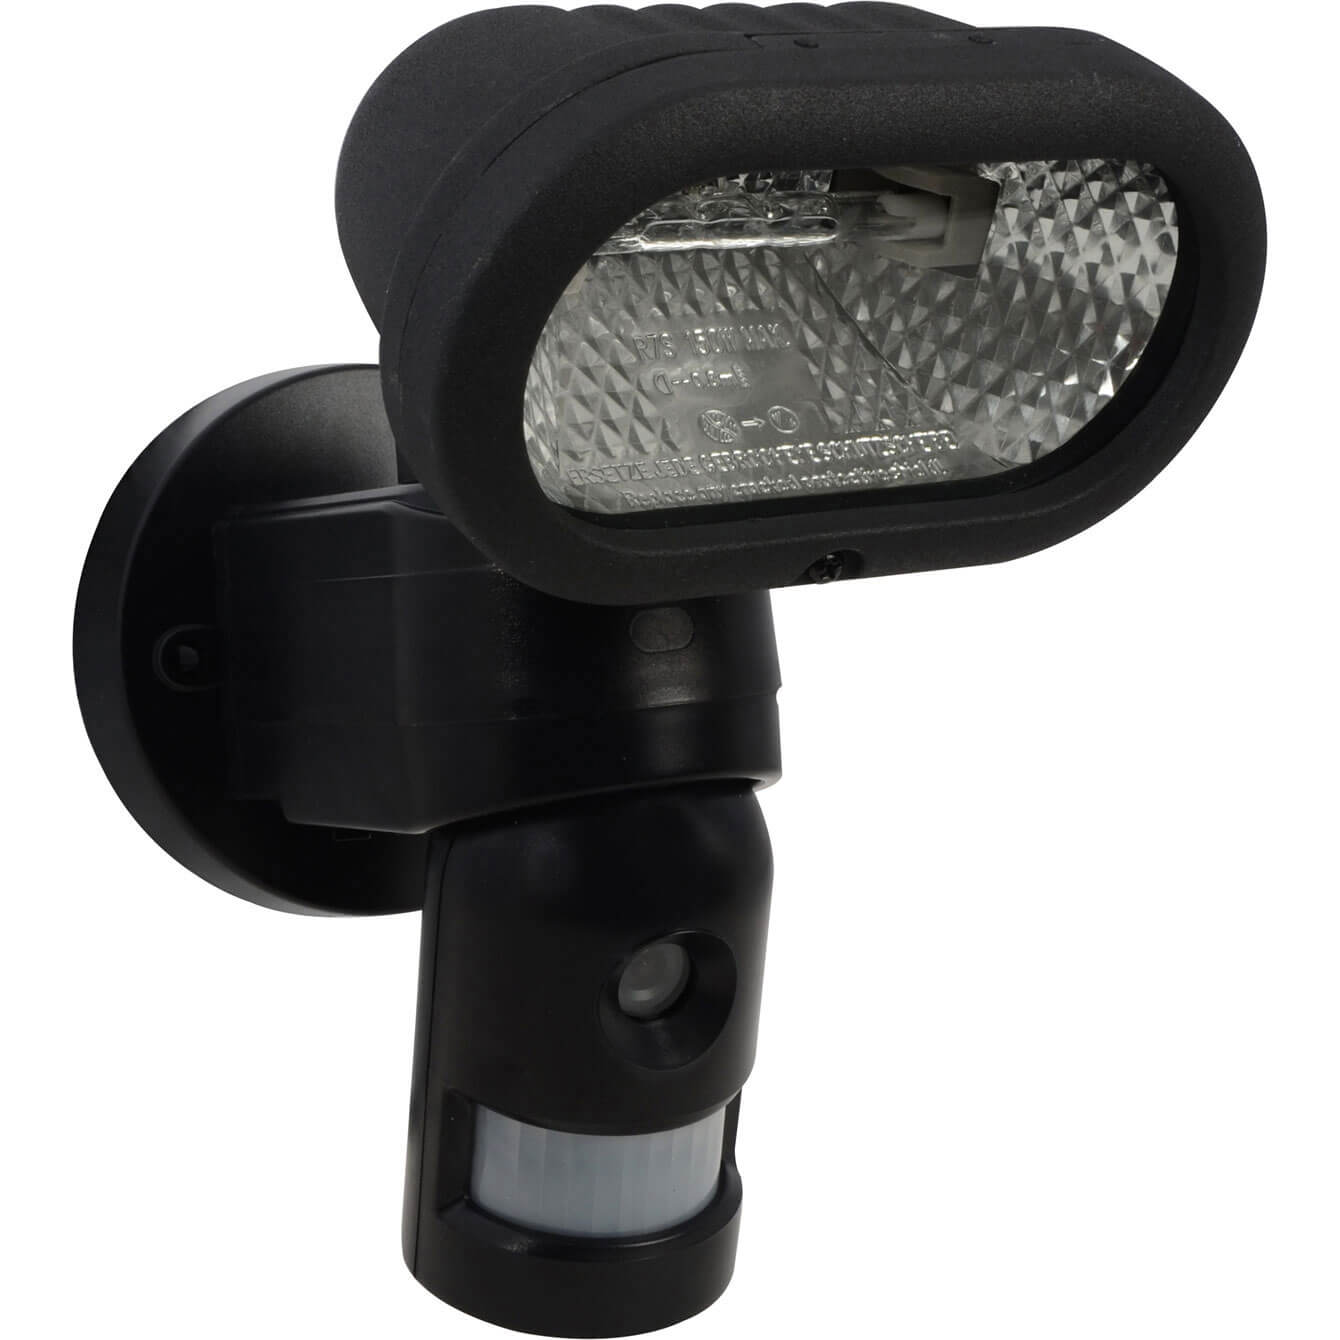 Offerta: Byron PIR Floodlight e Digital Camera with SD Recorder 240v